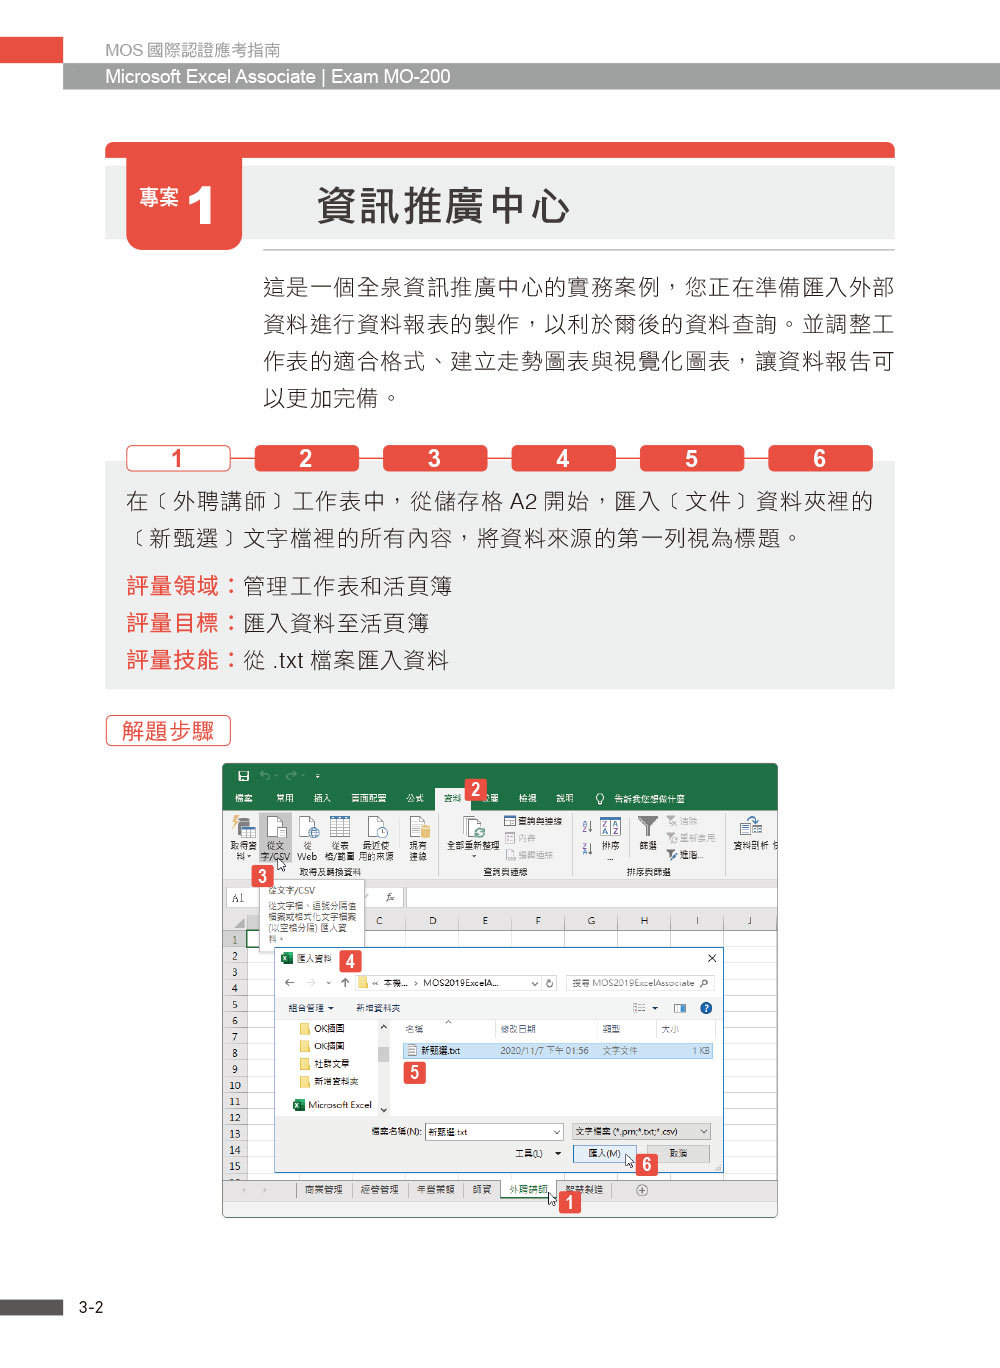 MOS 國際認證應考指南 -- Microsoft Excel Associate|Exam MO-200-preview-8